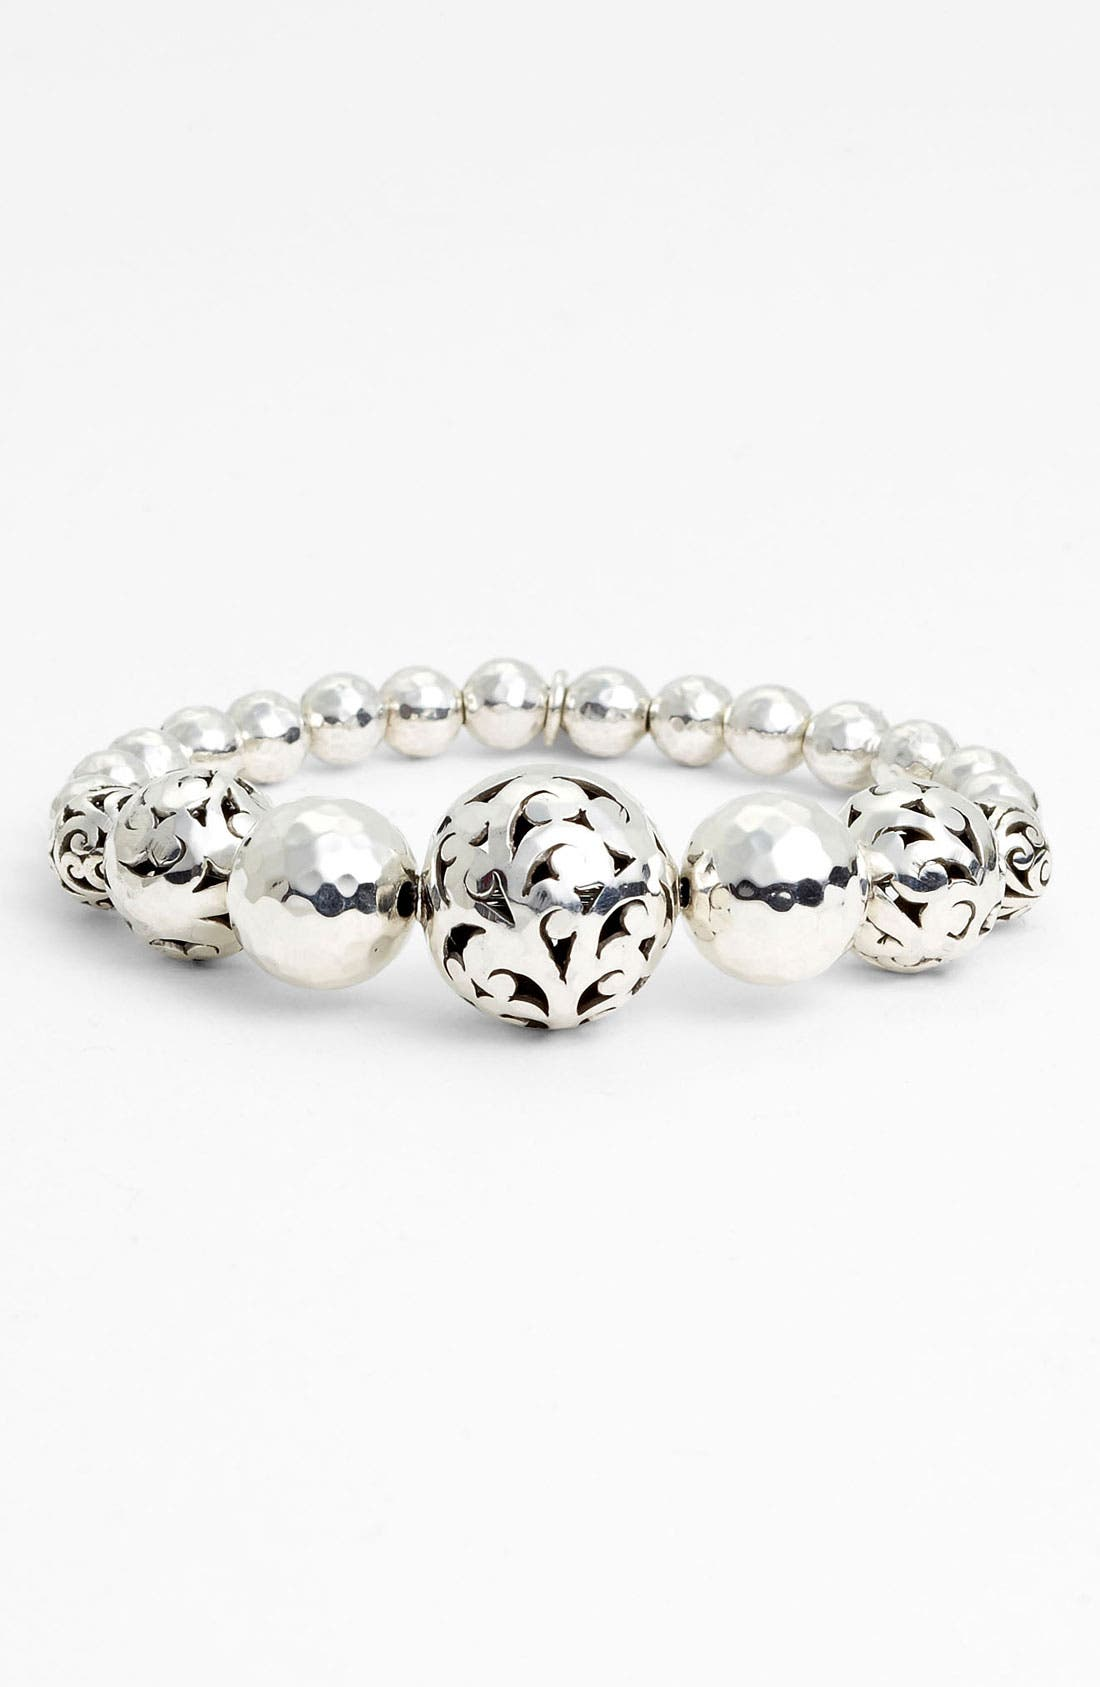 Alternate Image 1 Selected - Lois Hill 'Ball & Chain' Graduated Bead Stretch Bracelet